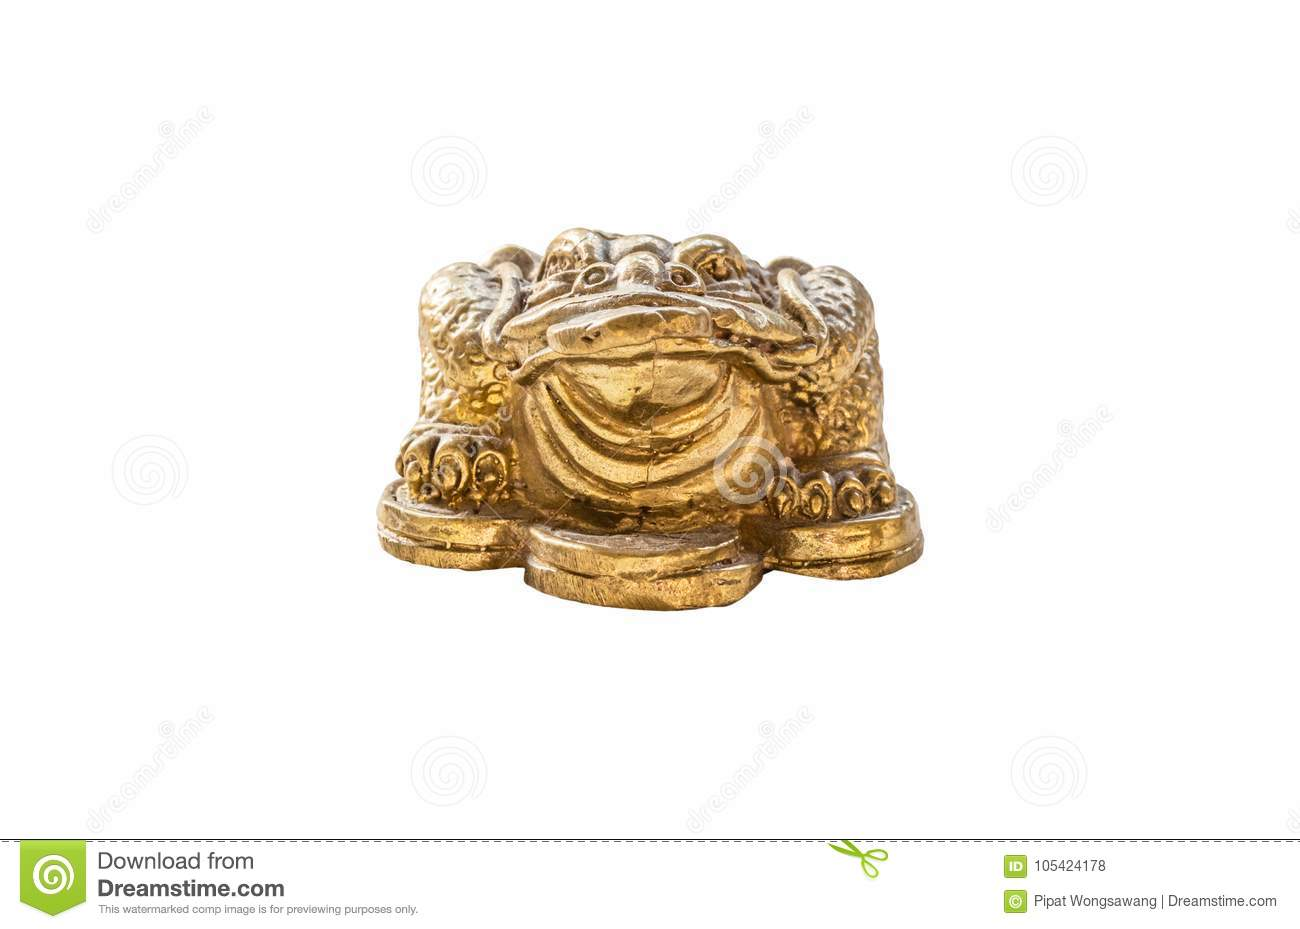 Cash mascot - Chan Chu - a gold frog figurine sitting on coins.isolated on white background